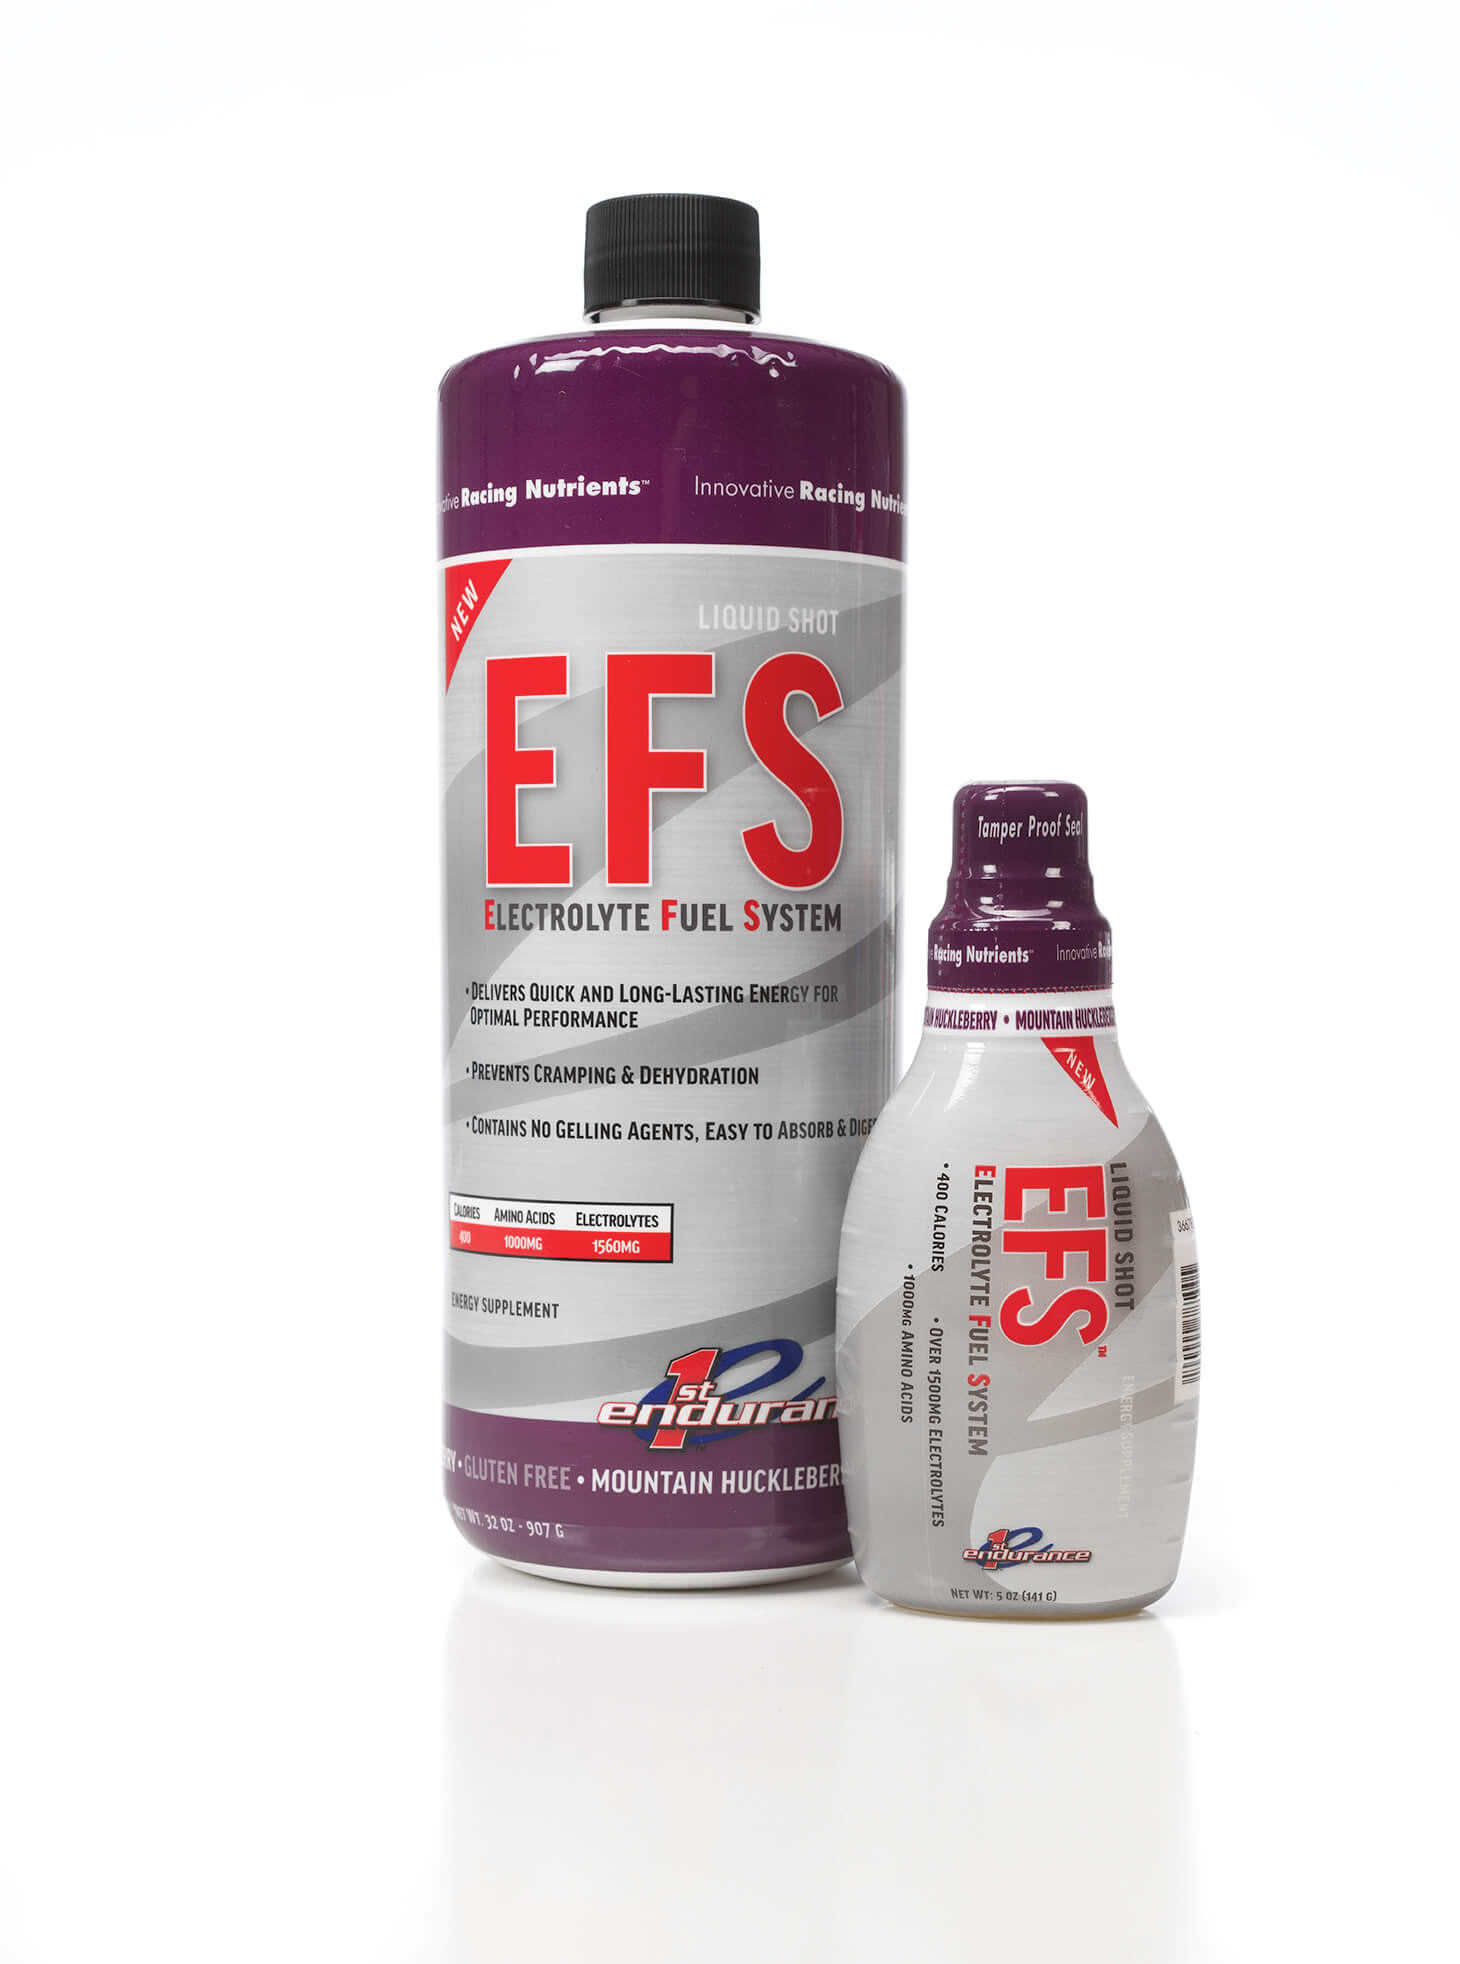 Mountain-Huckleberry-Liquid-Shot-and-Refill-EFS-right-web